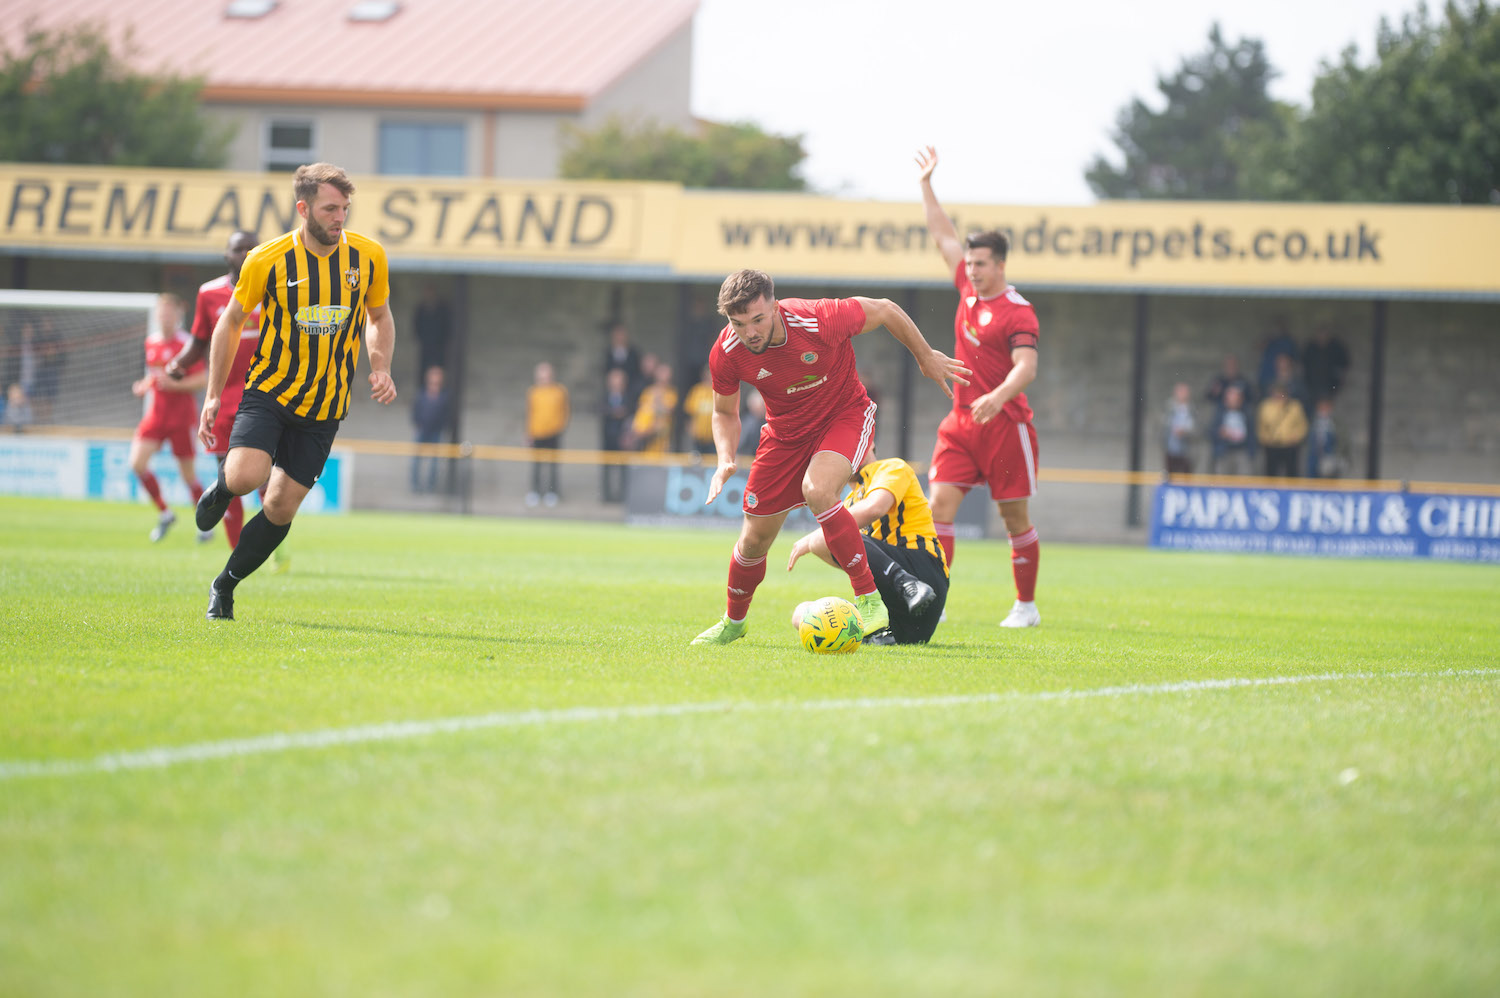 Read the full article - Reds keen to bounce back against Ambers